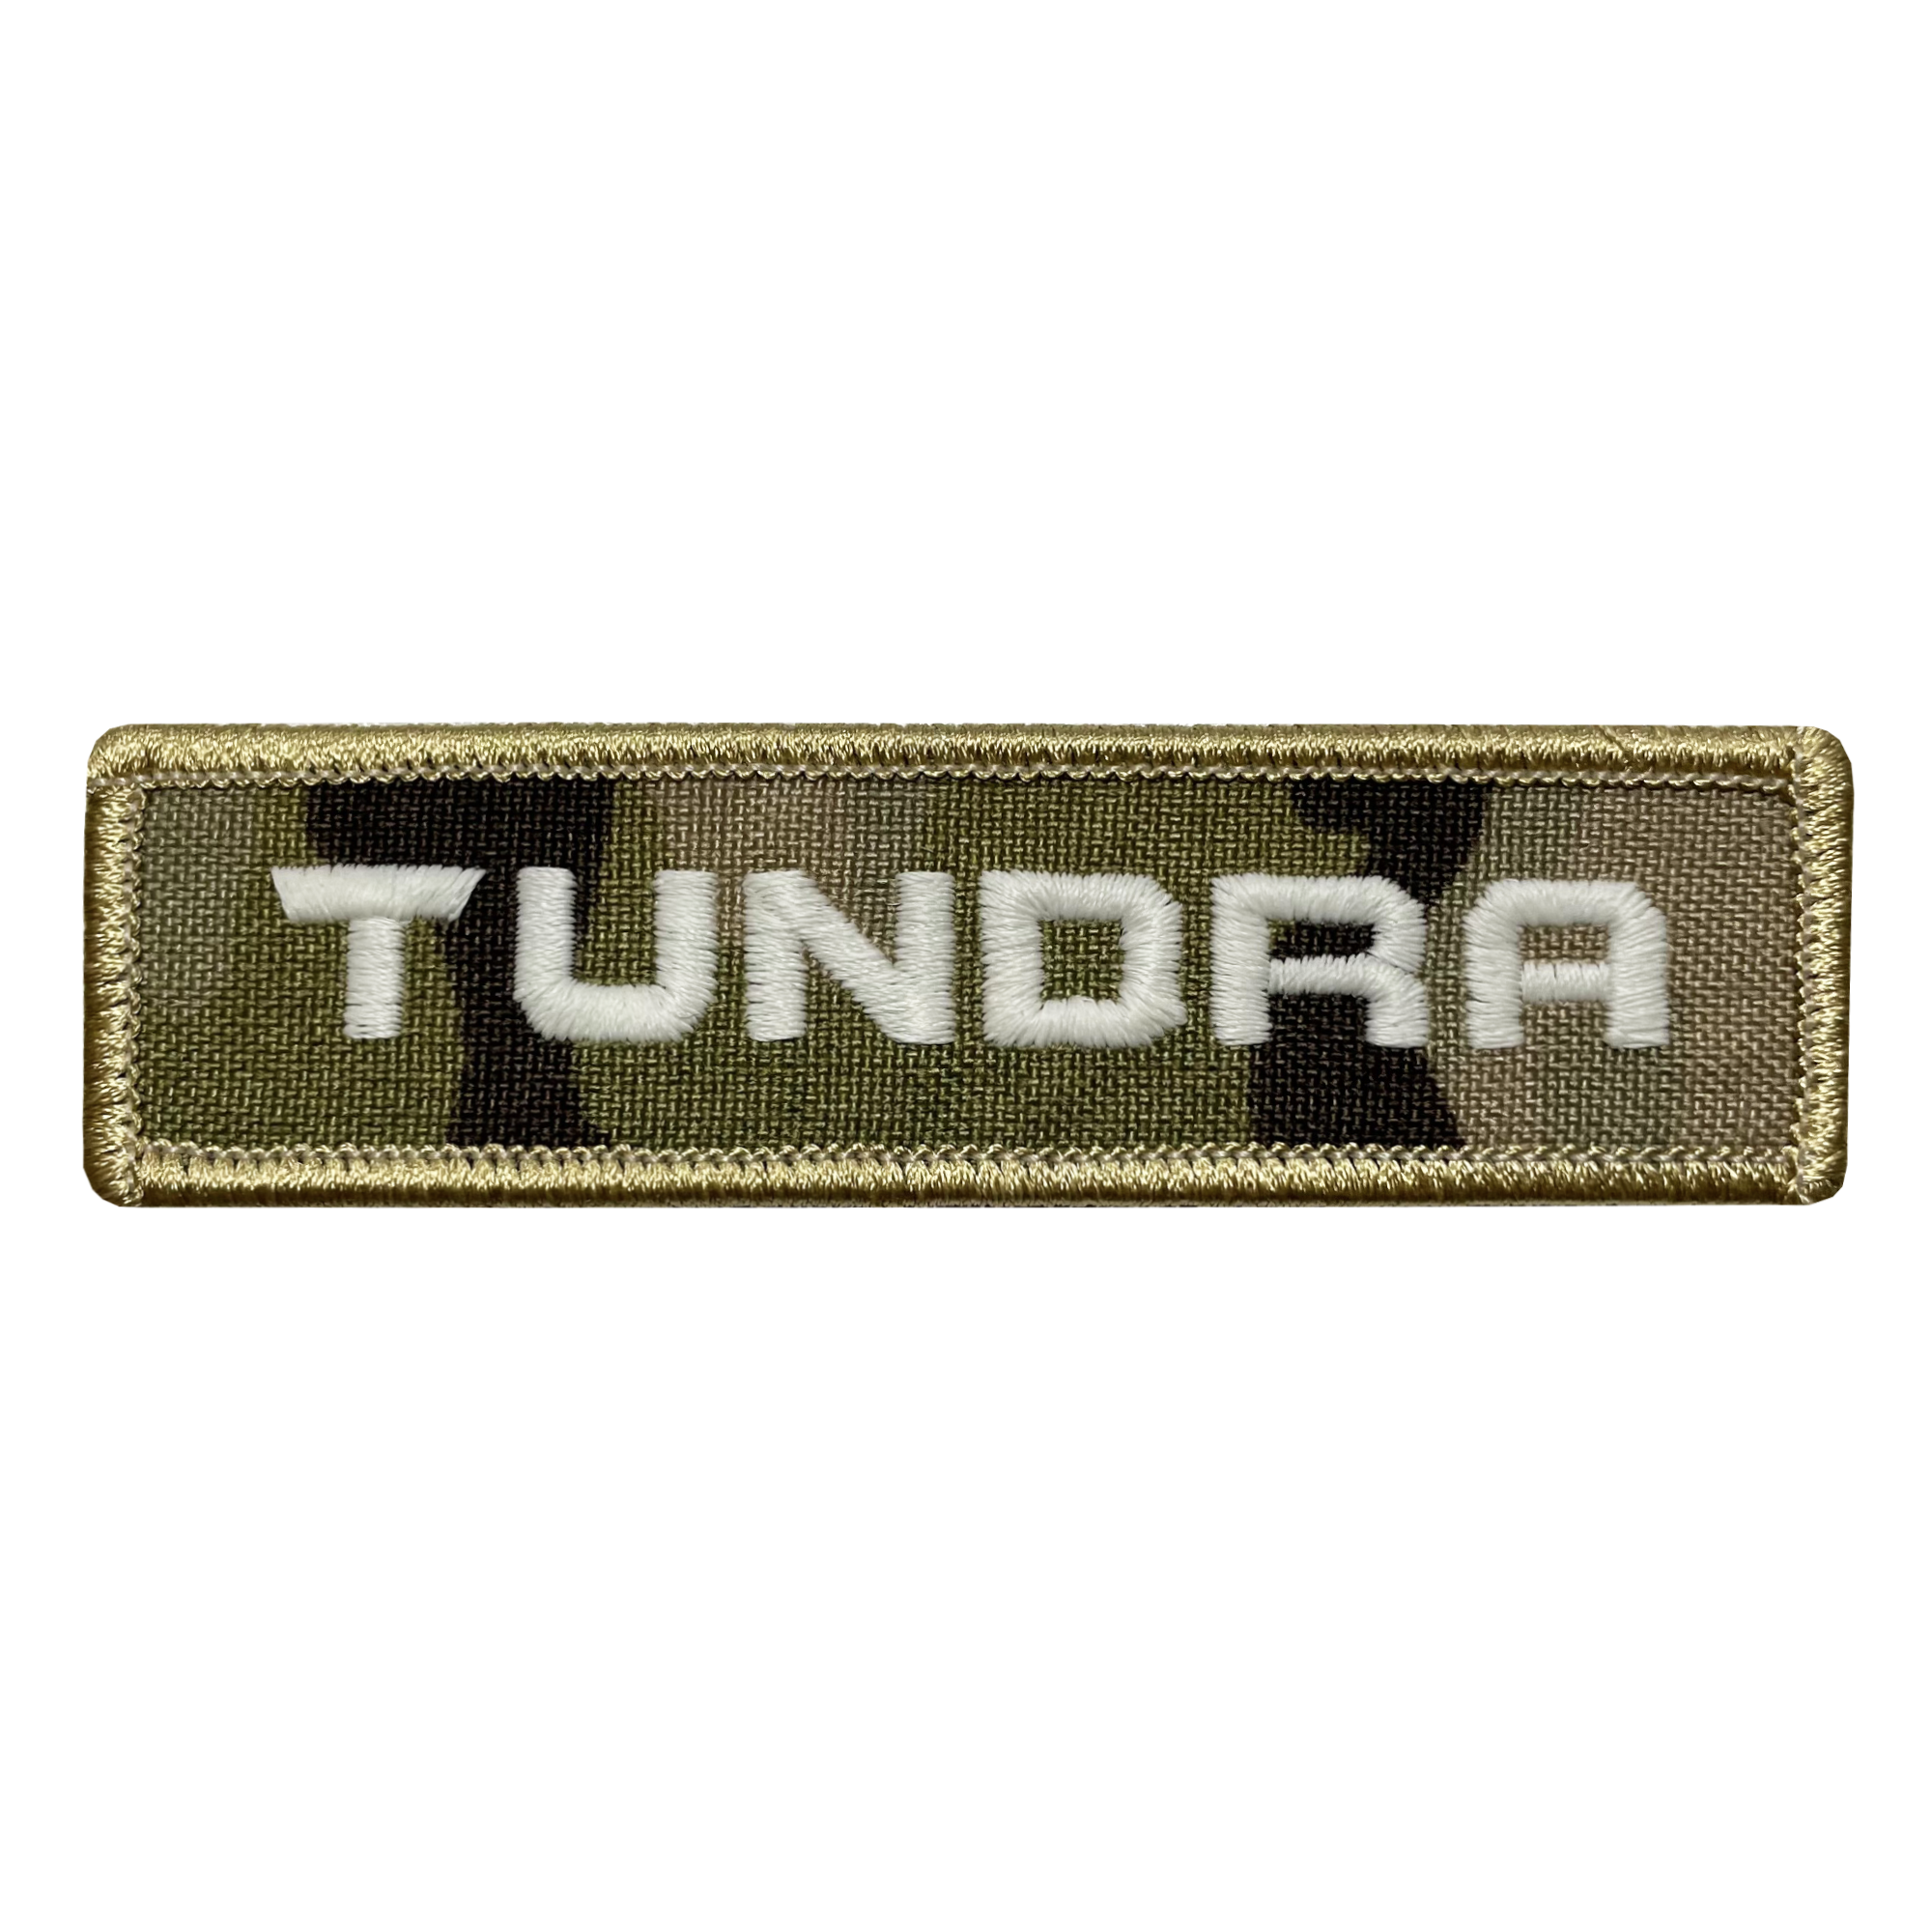 Tundra Camo Name Tape Patch